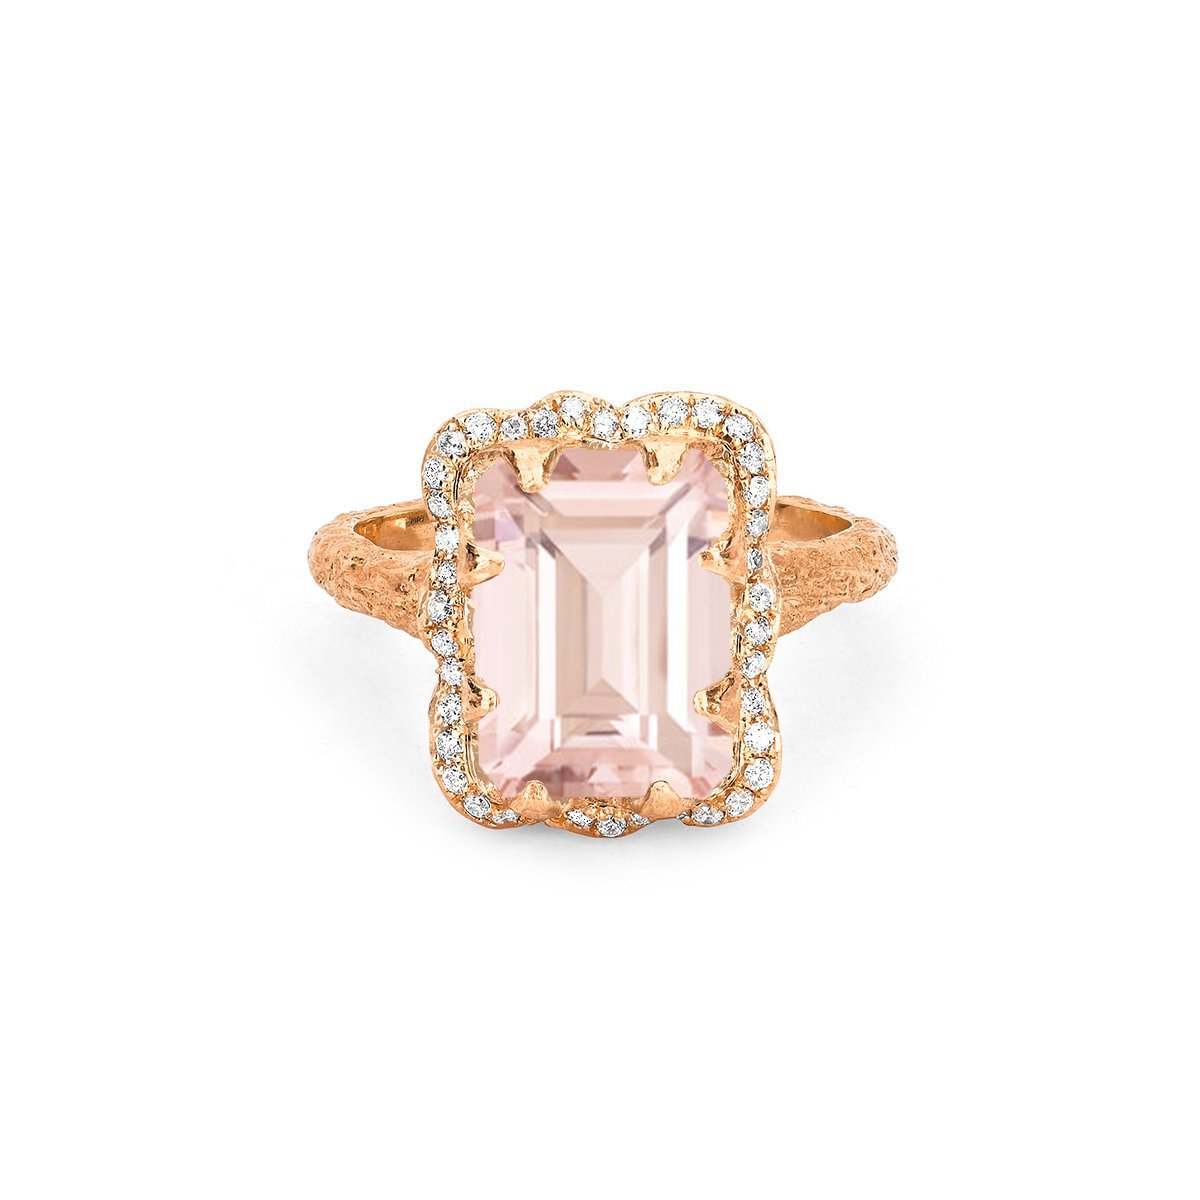 18k Queen Emerald Cut Morganite Ring with Pavé Diamond Halo